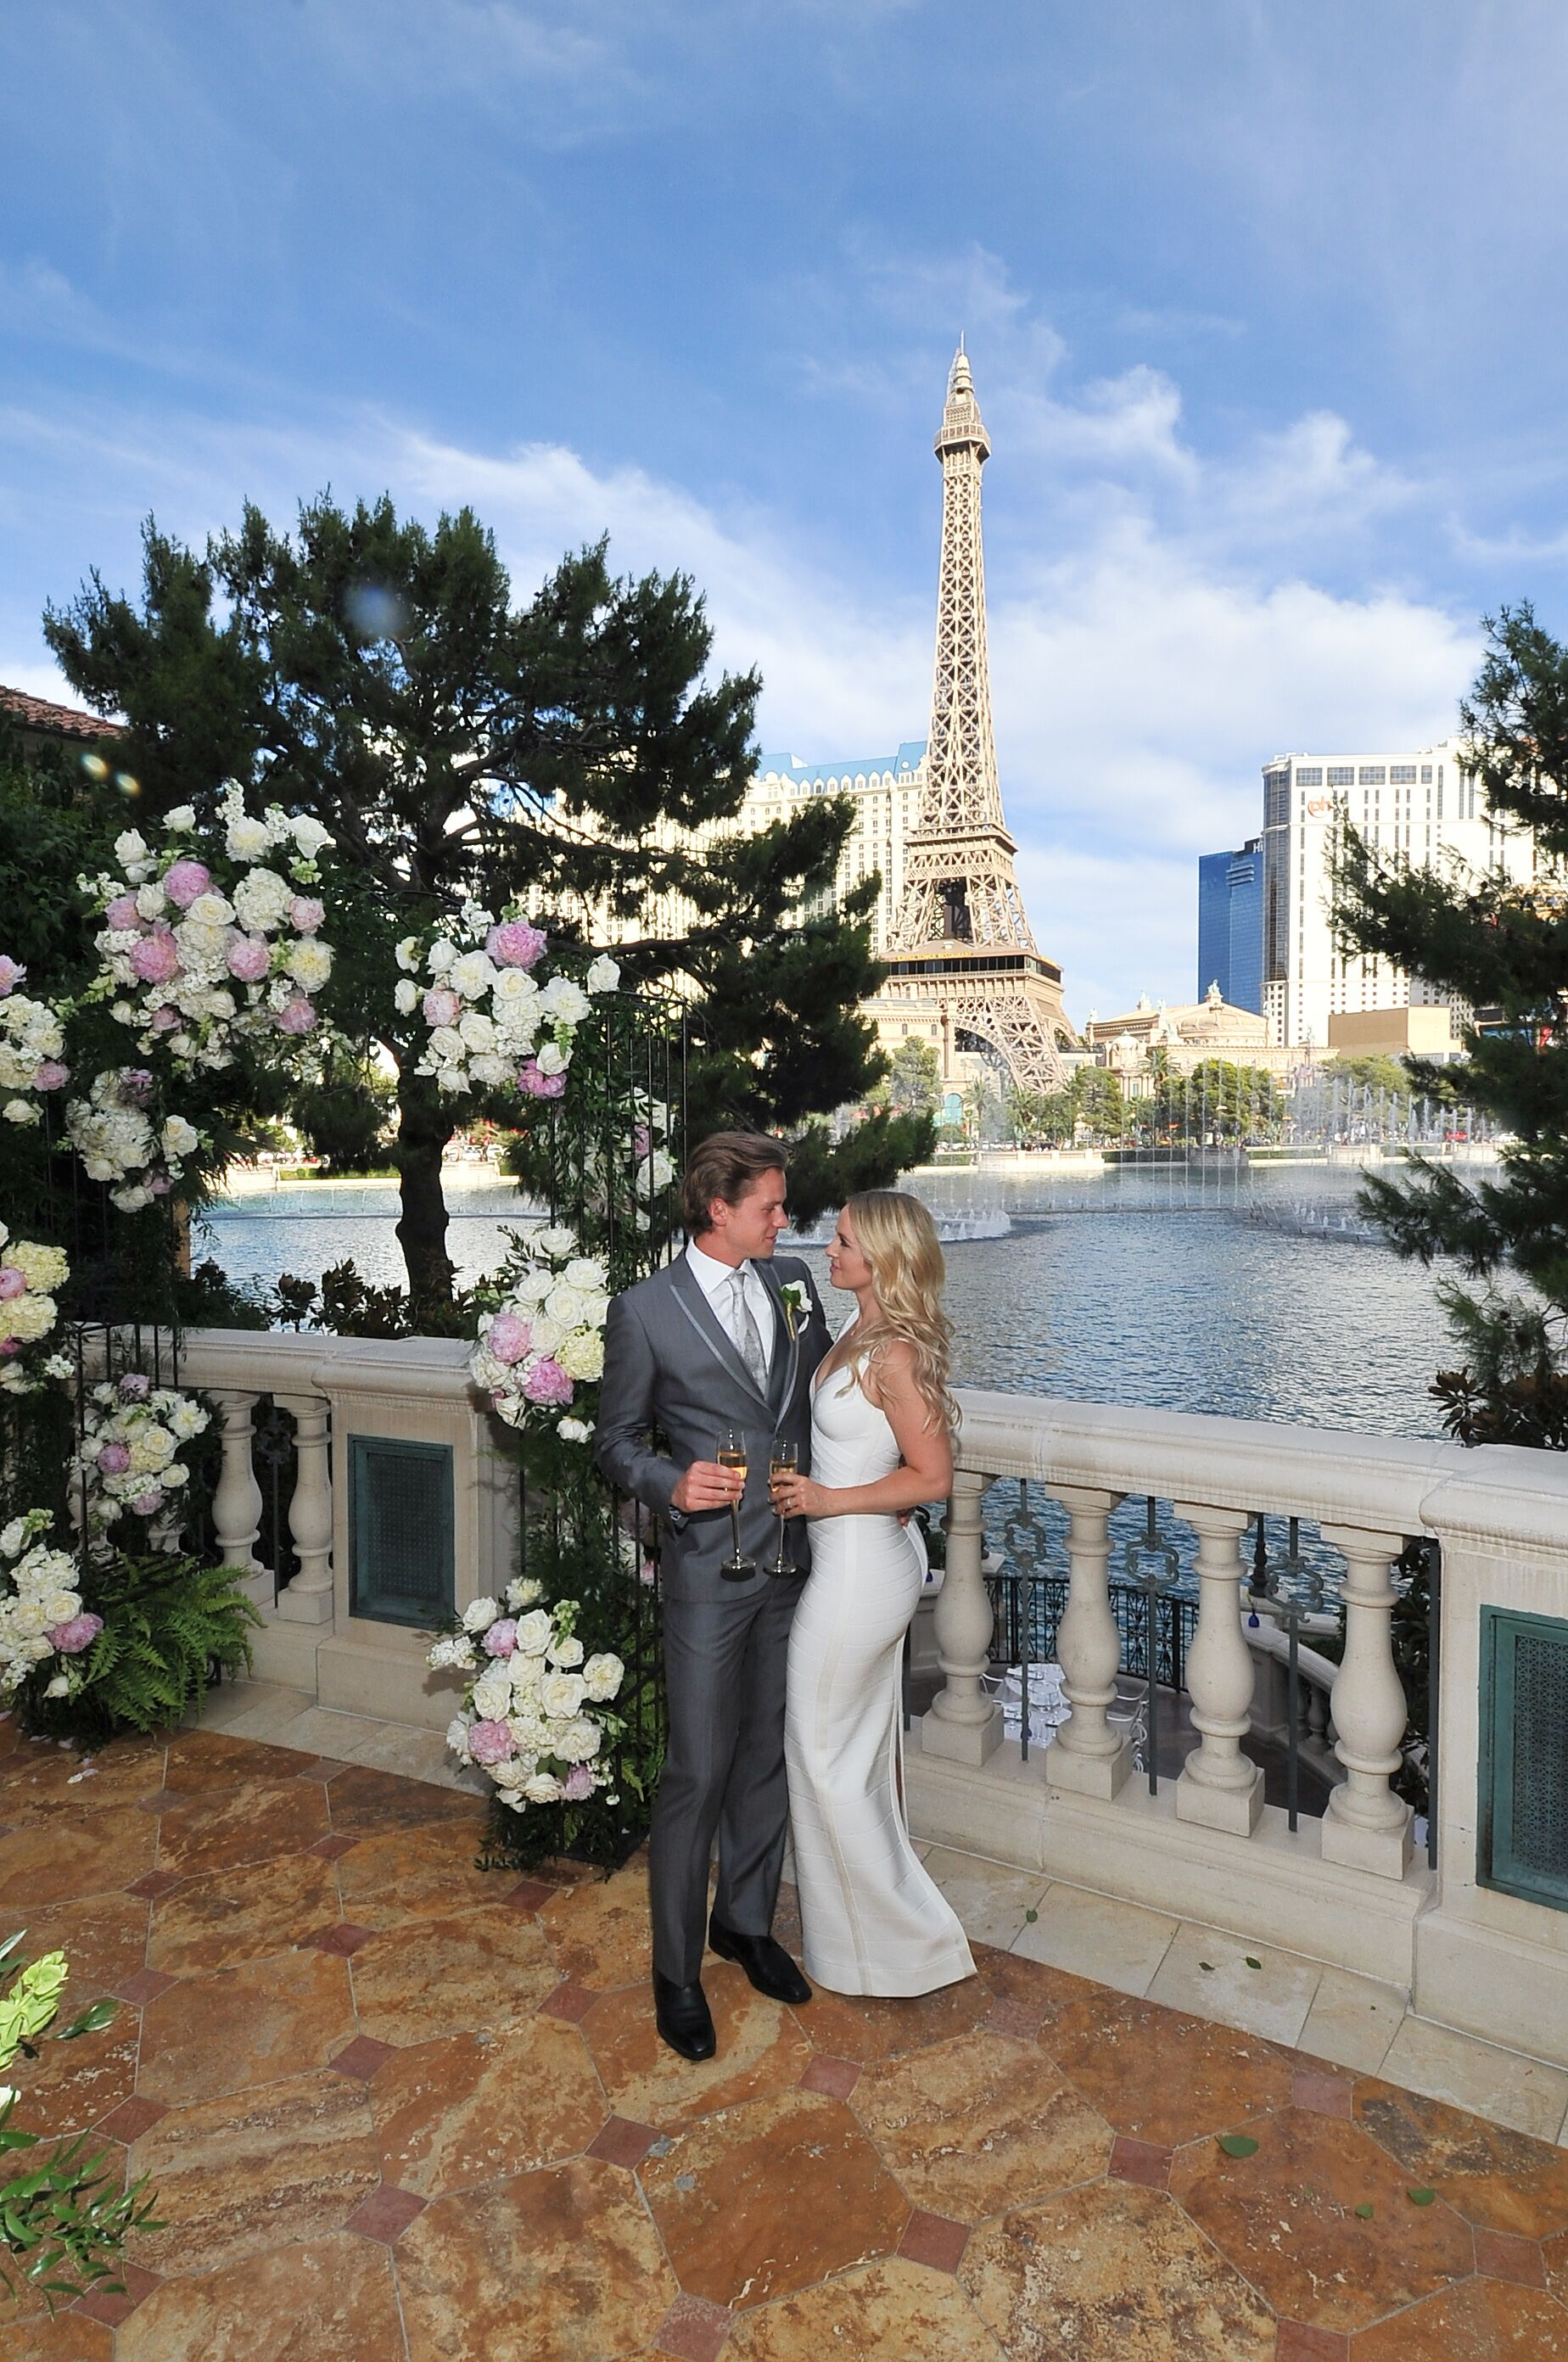 Weddings At Bellagio